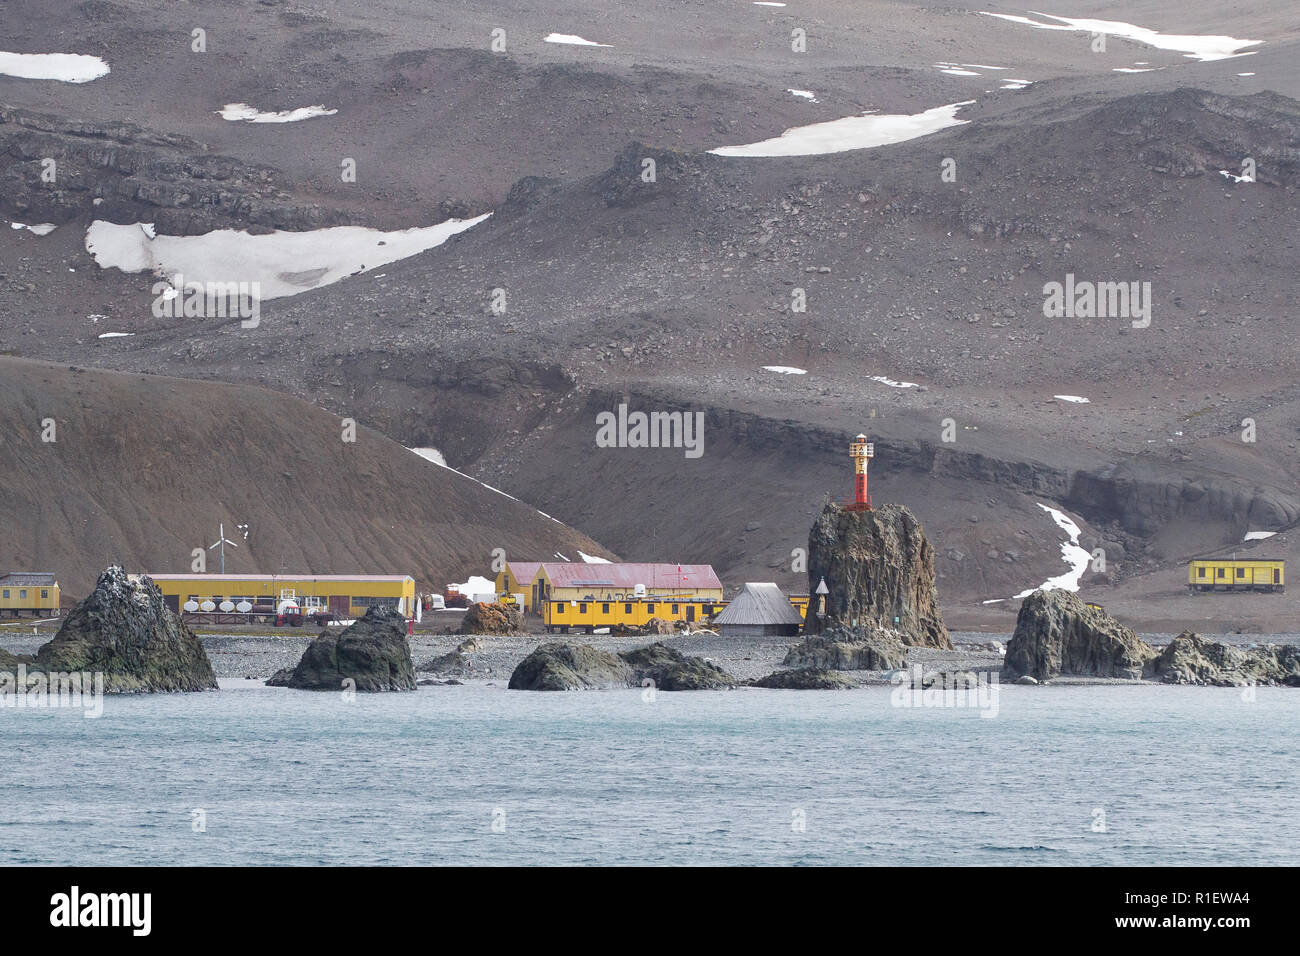 Research station Antarctica. Henryk Arctowski Polish Antarctic Station. - Stock Image